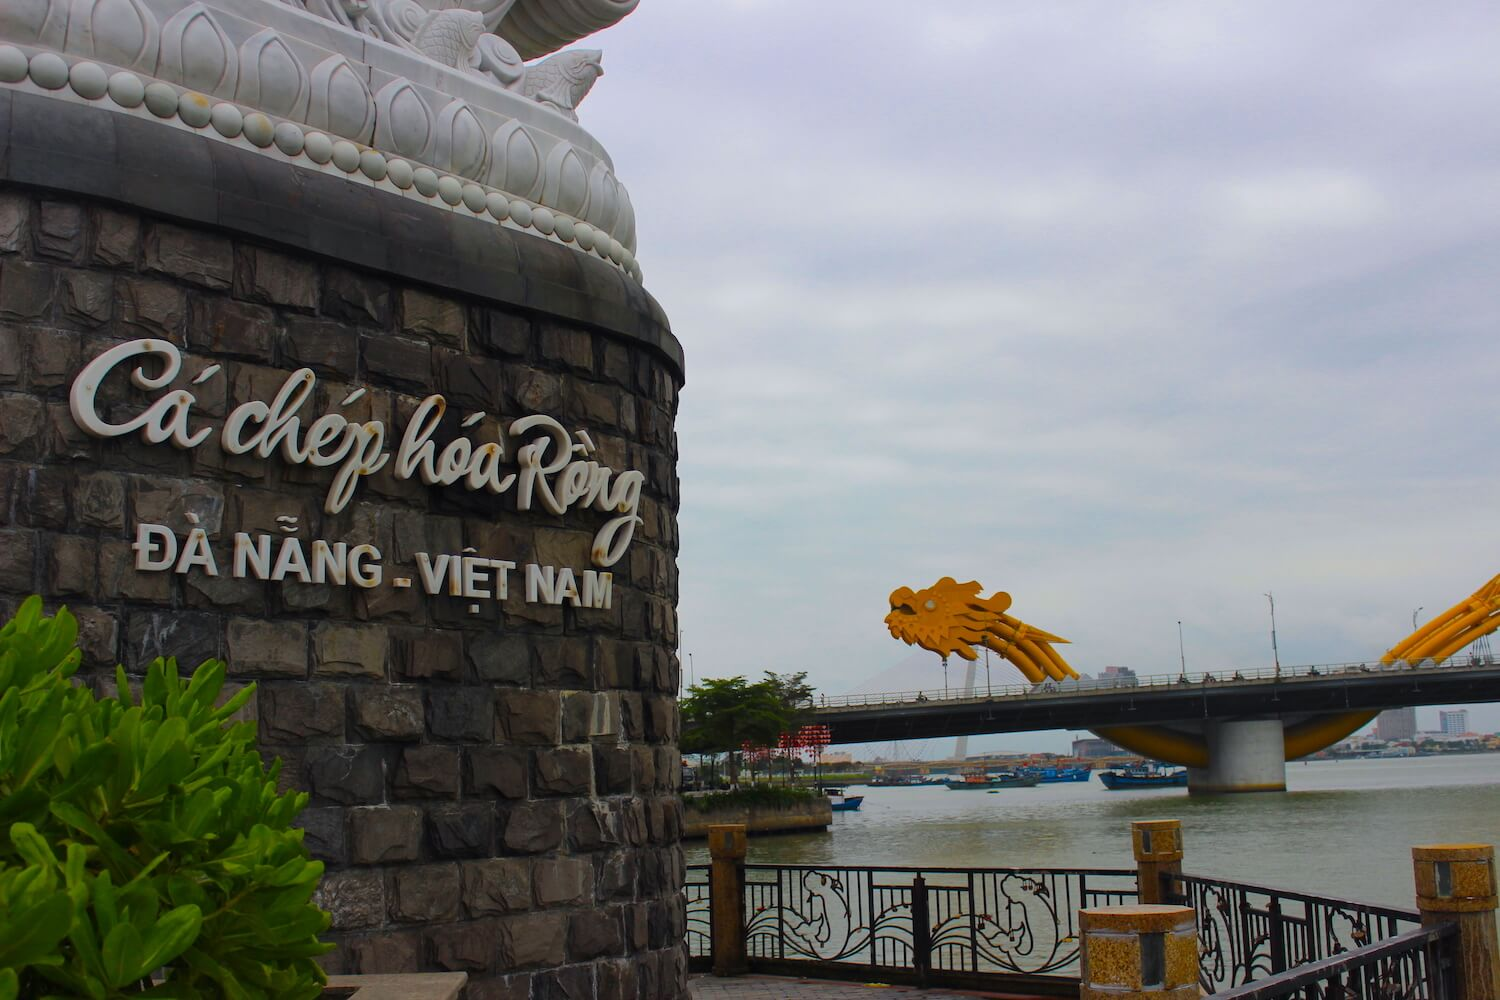 da nang dragon bridge and statue